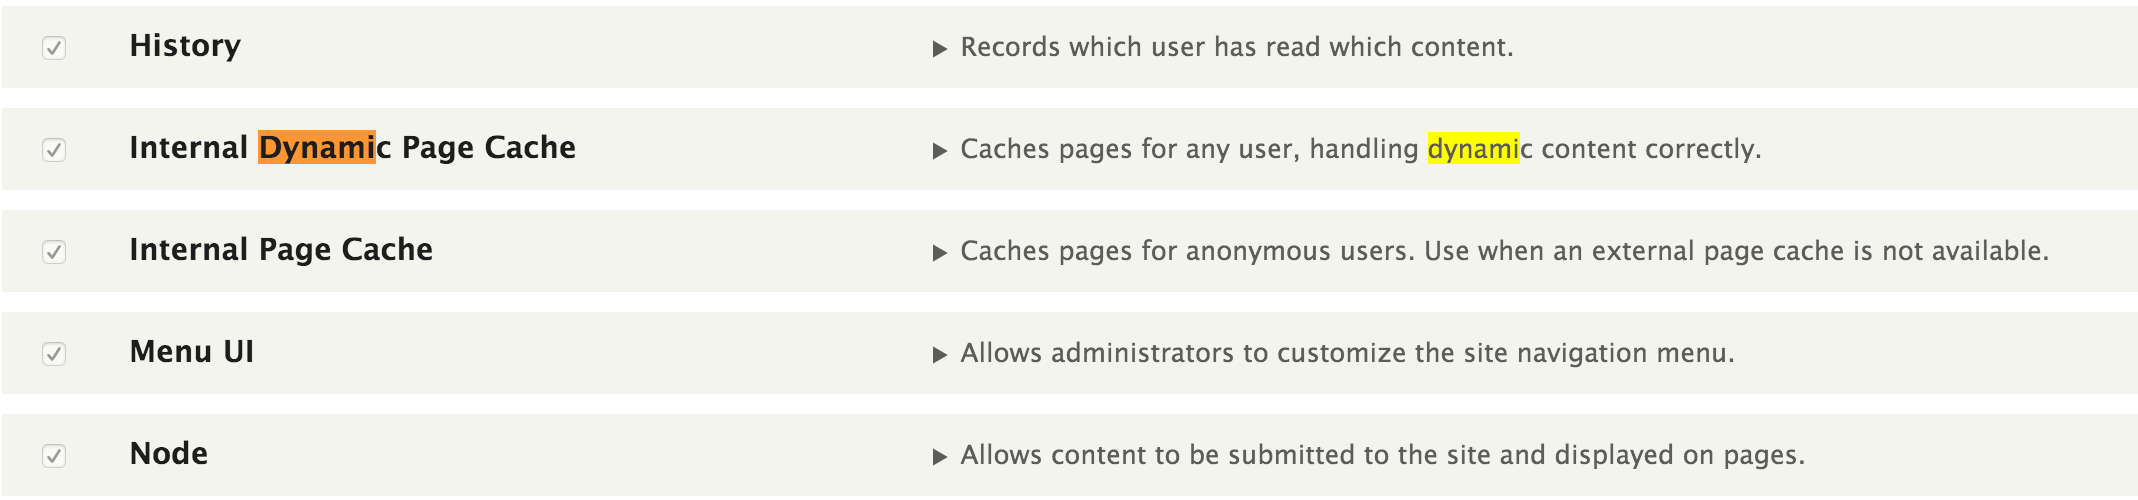 Dynamic Page cache